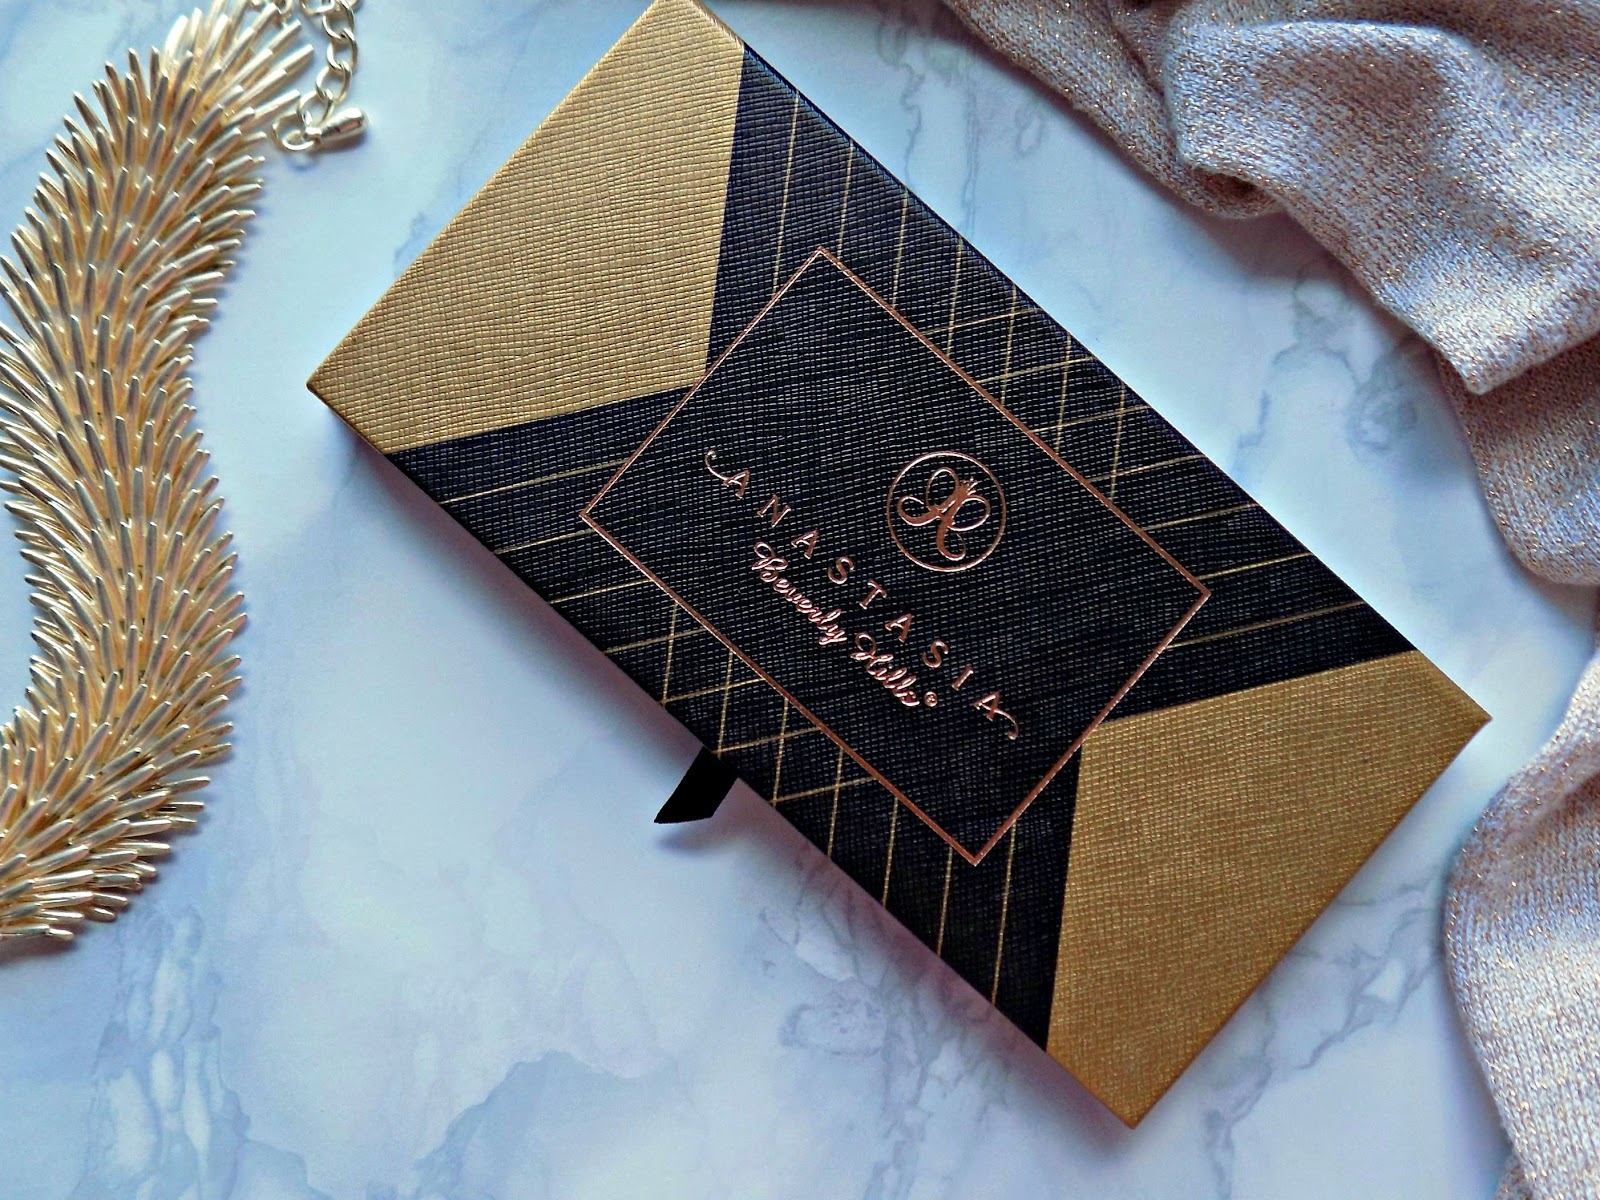 Anastasia beverly Hills Shadow Couture palette